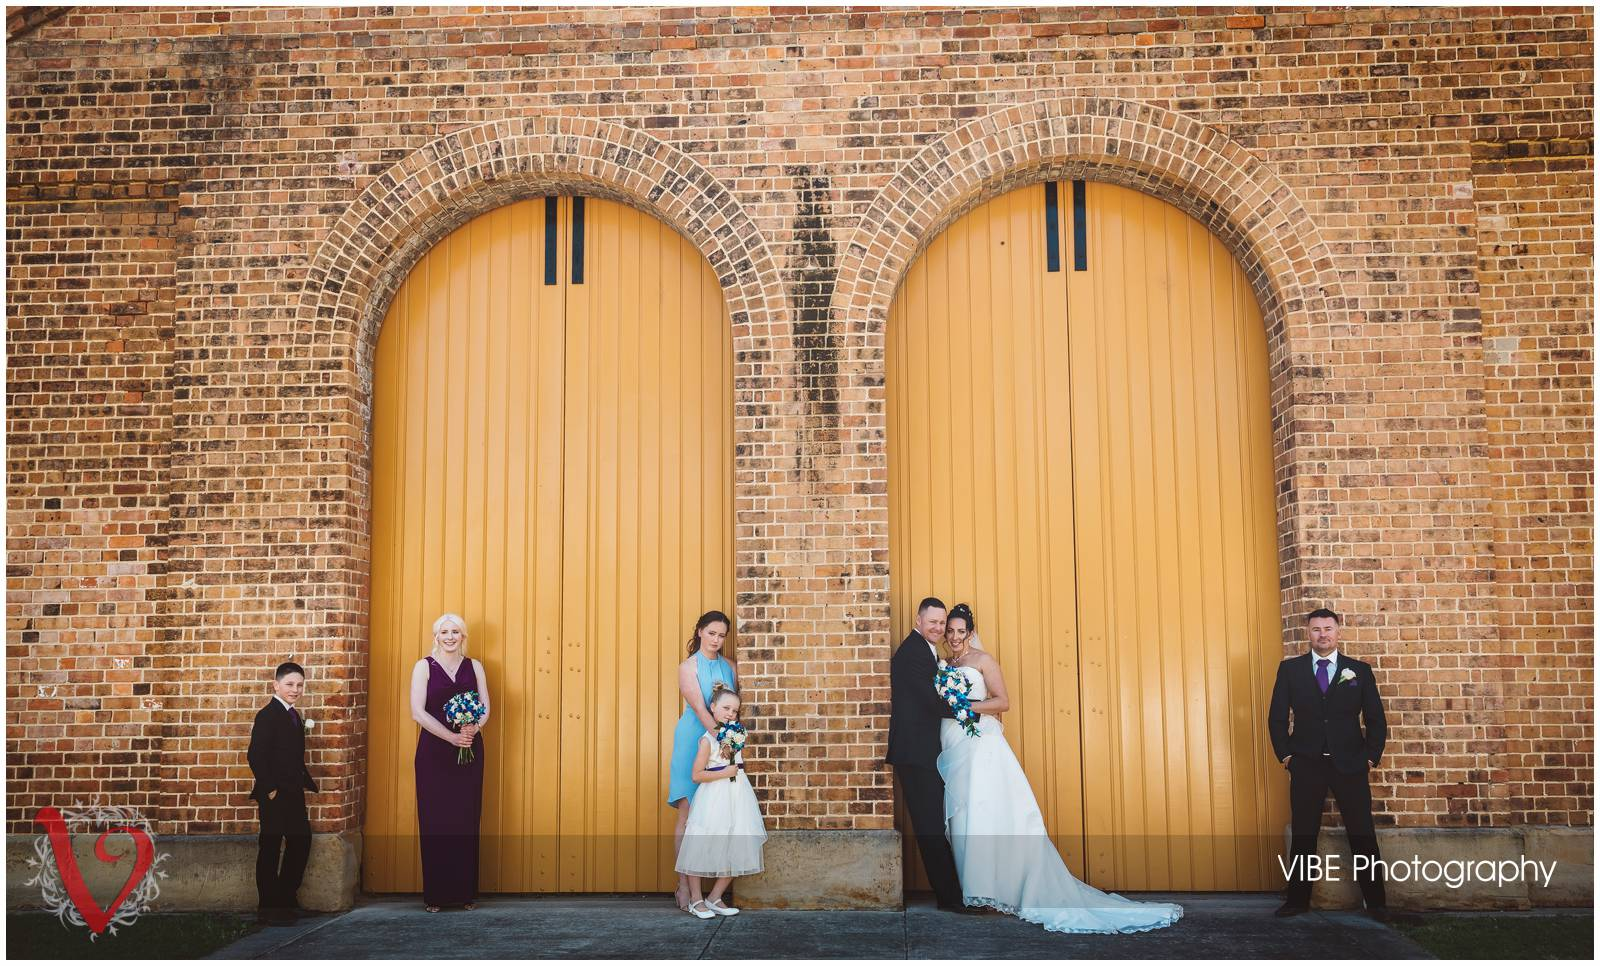 Newcastle wedding VIBE Photography (13)